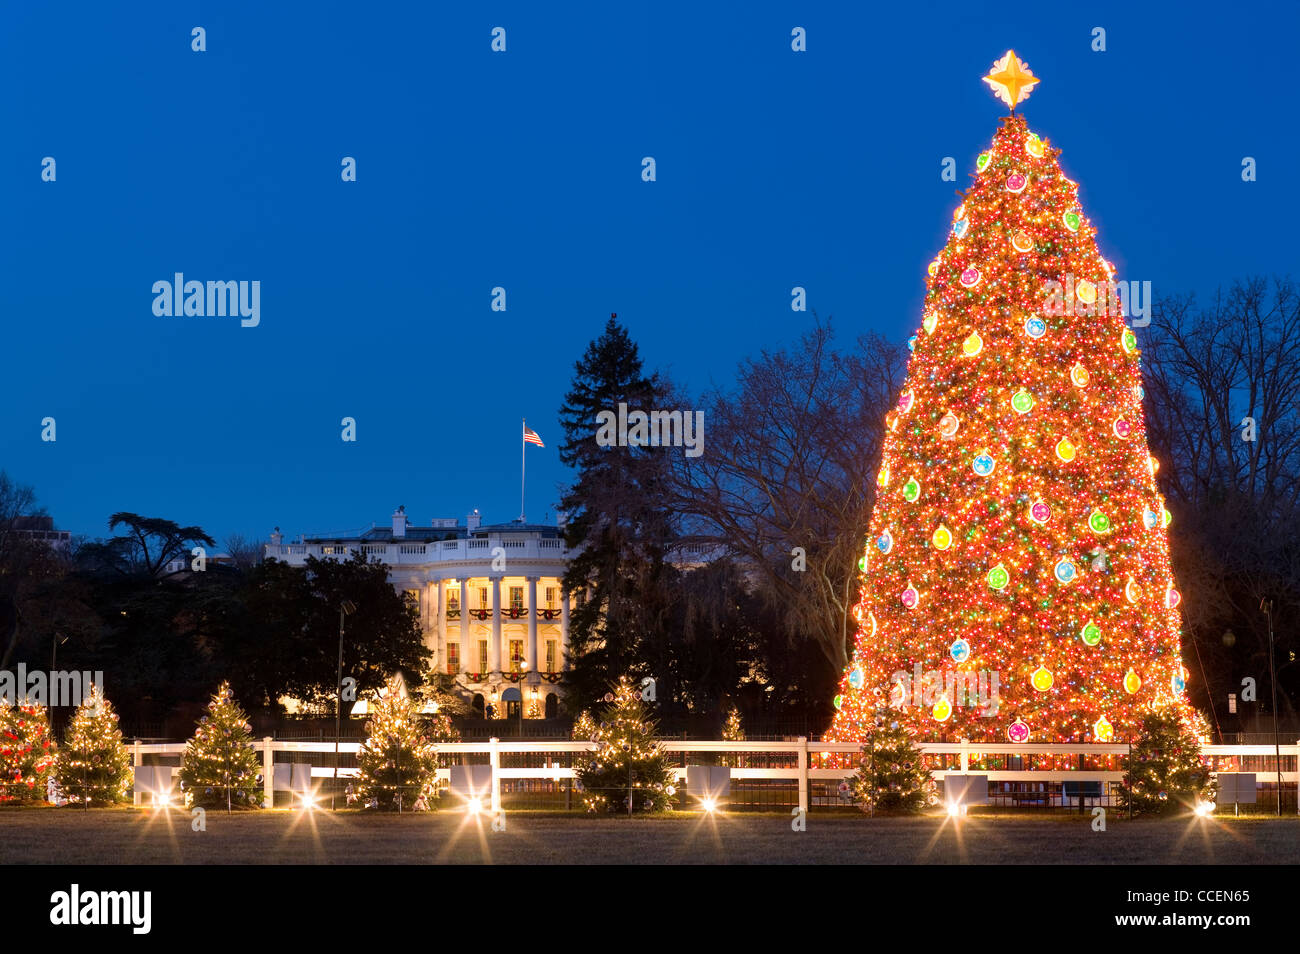 Festive lights of the National Christmas Tree and the Pageant of Peace in front of the White House Washington DC - Stock Image